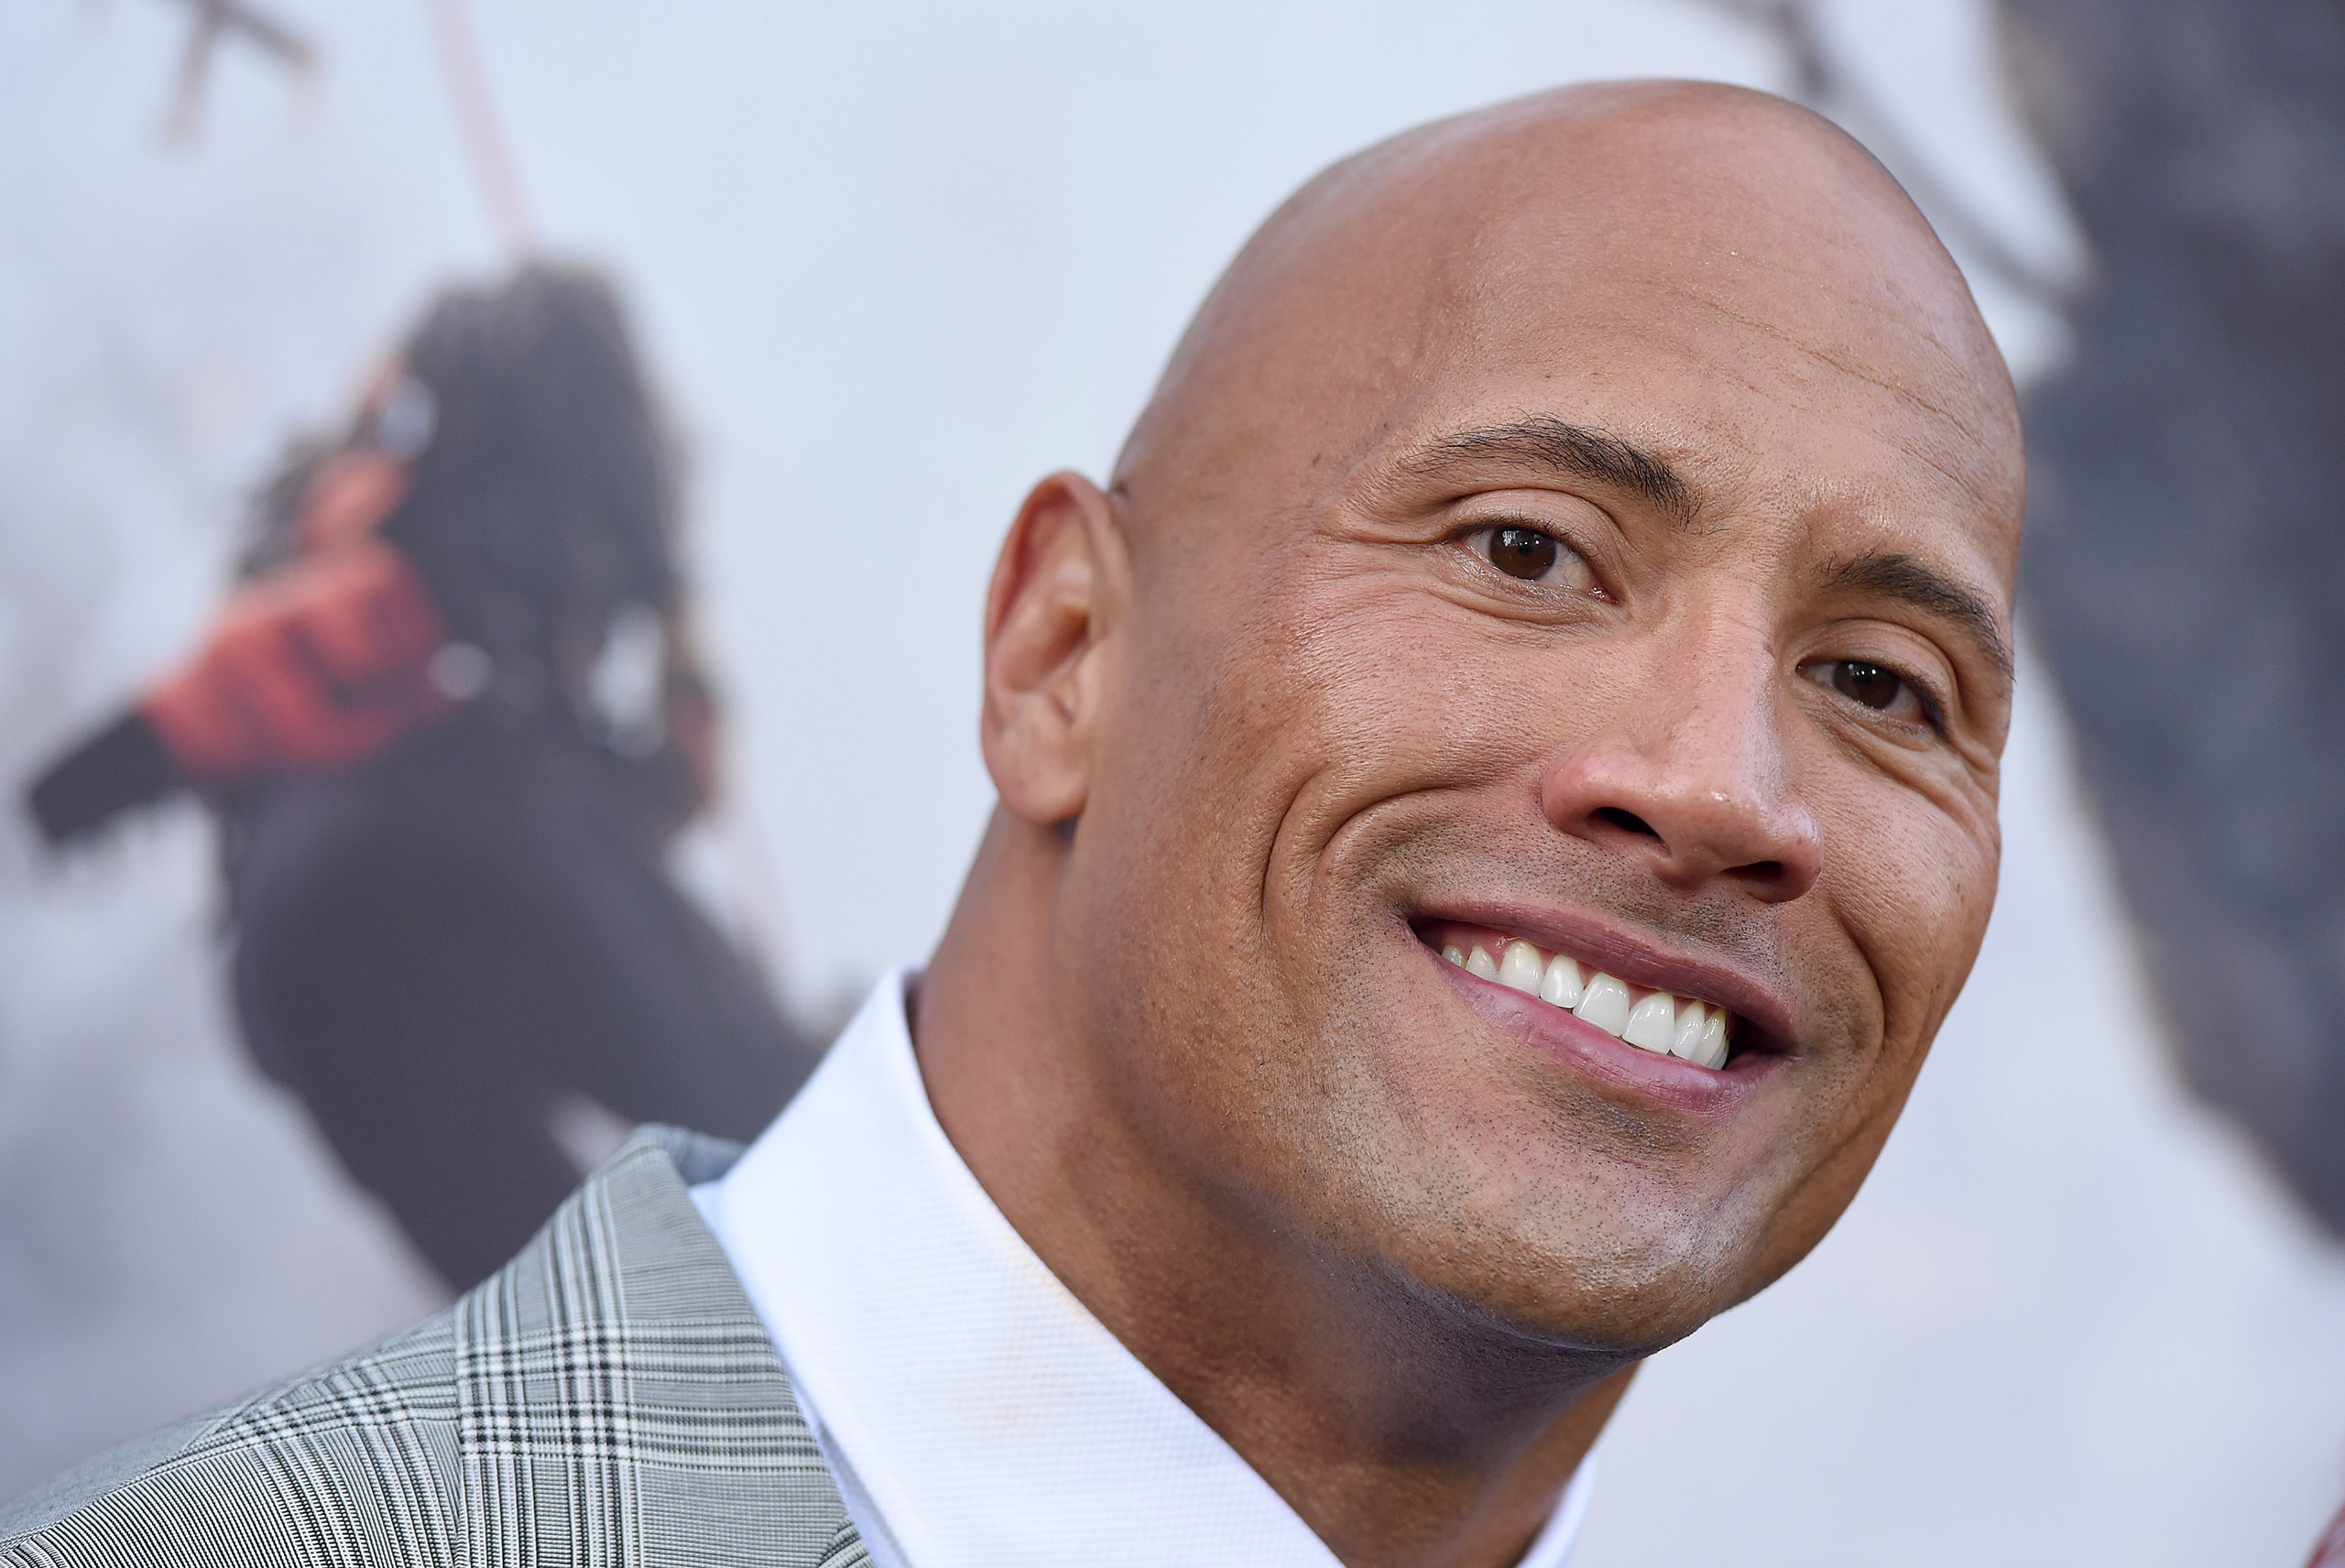 Dwayne 'The Rock' Johnson in Hollywood, Calif., May 26, 2015